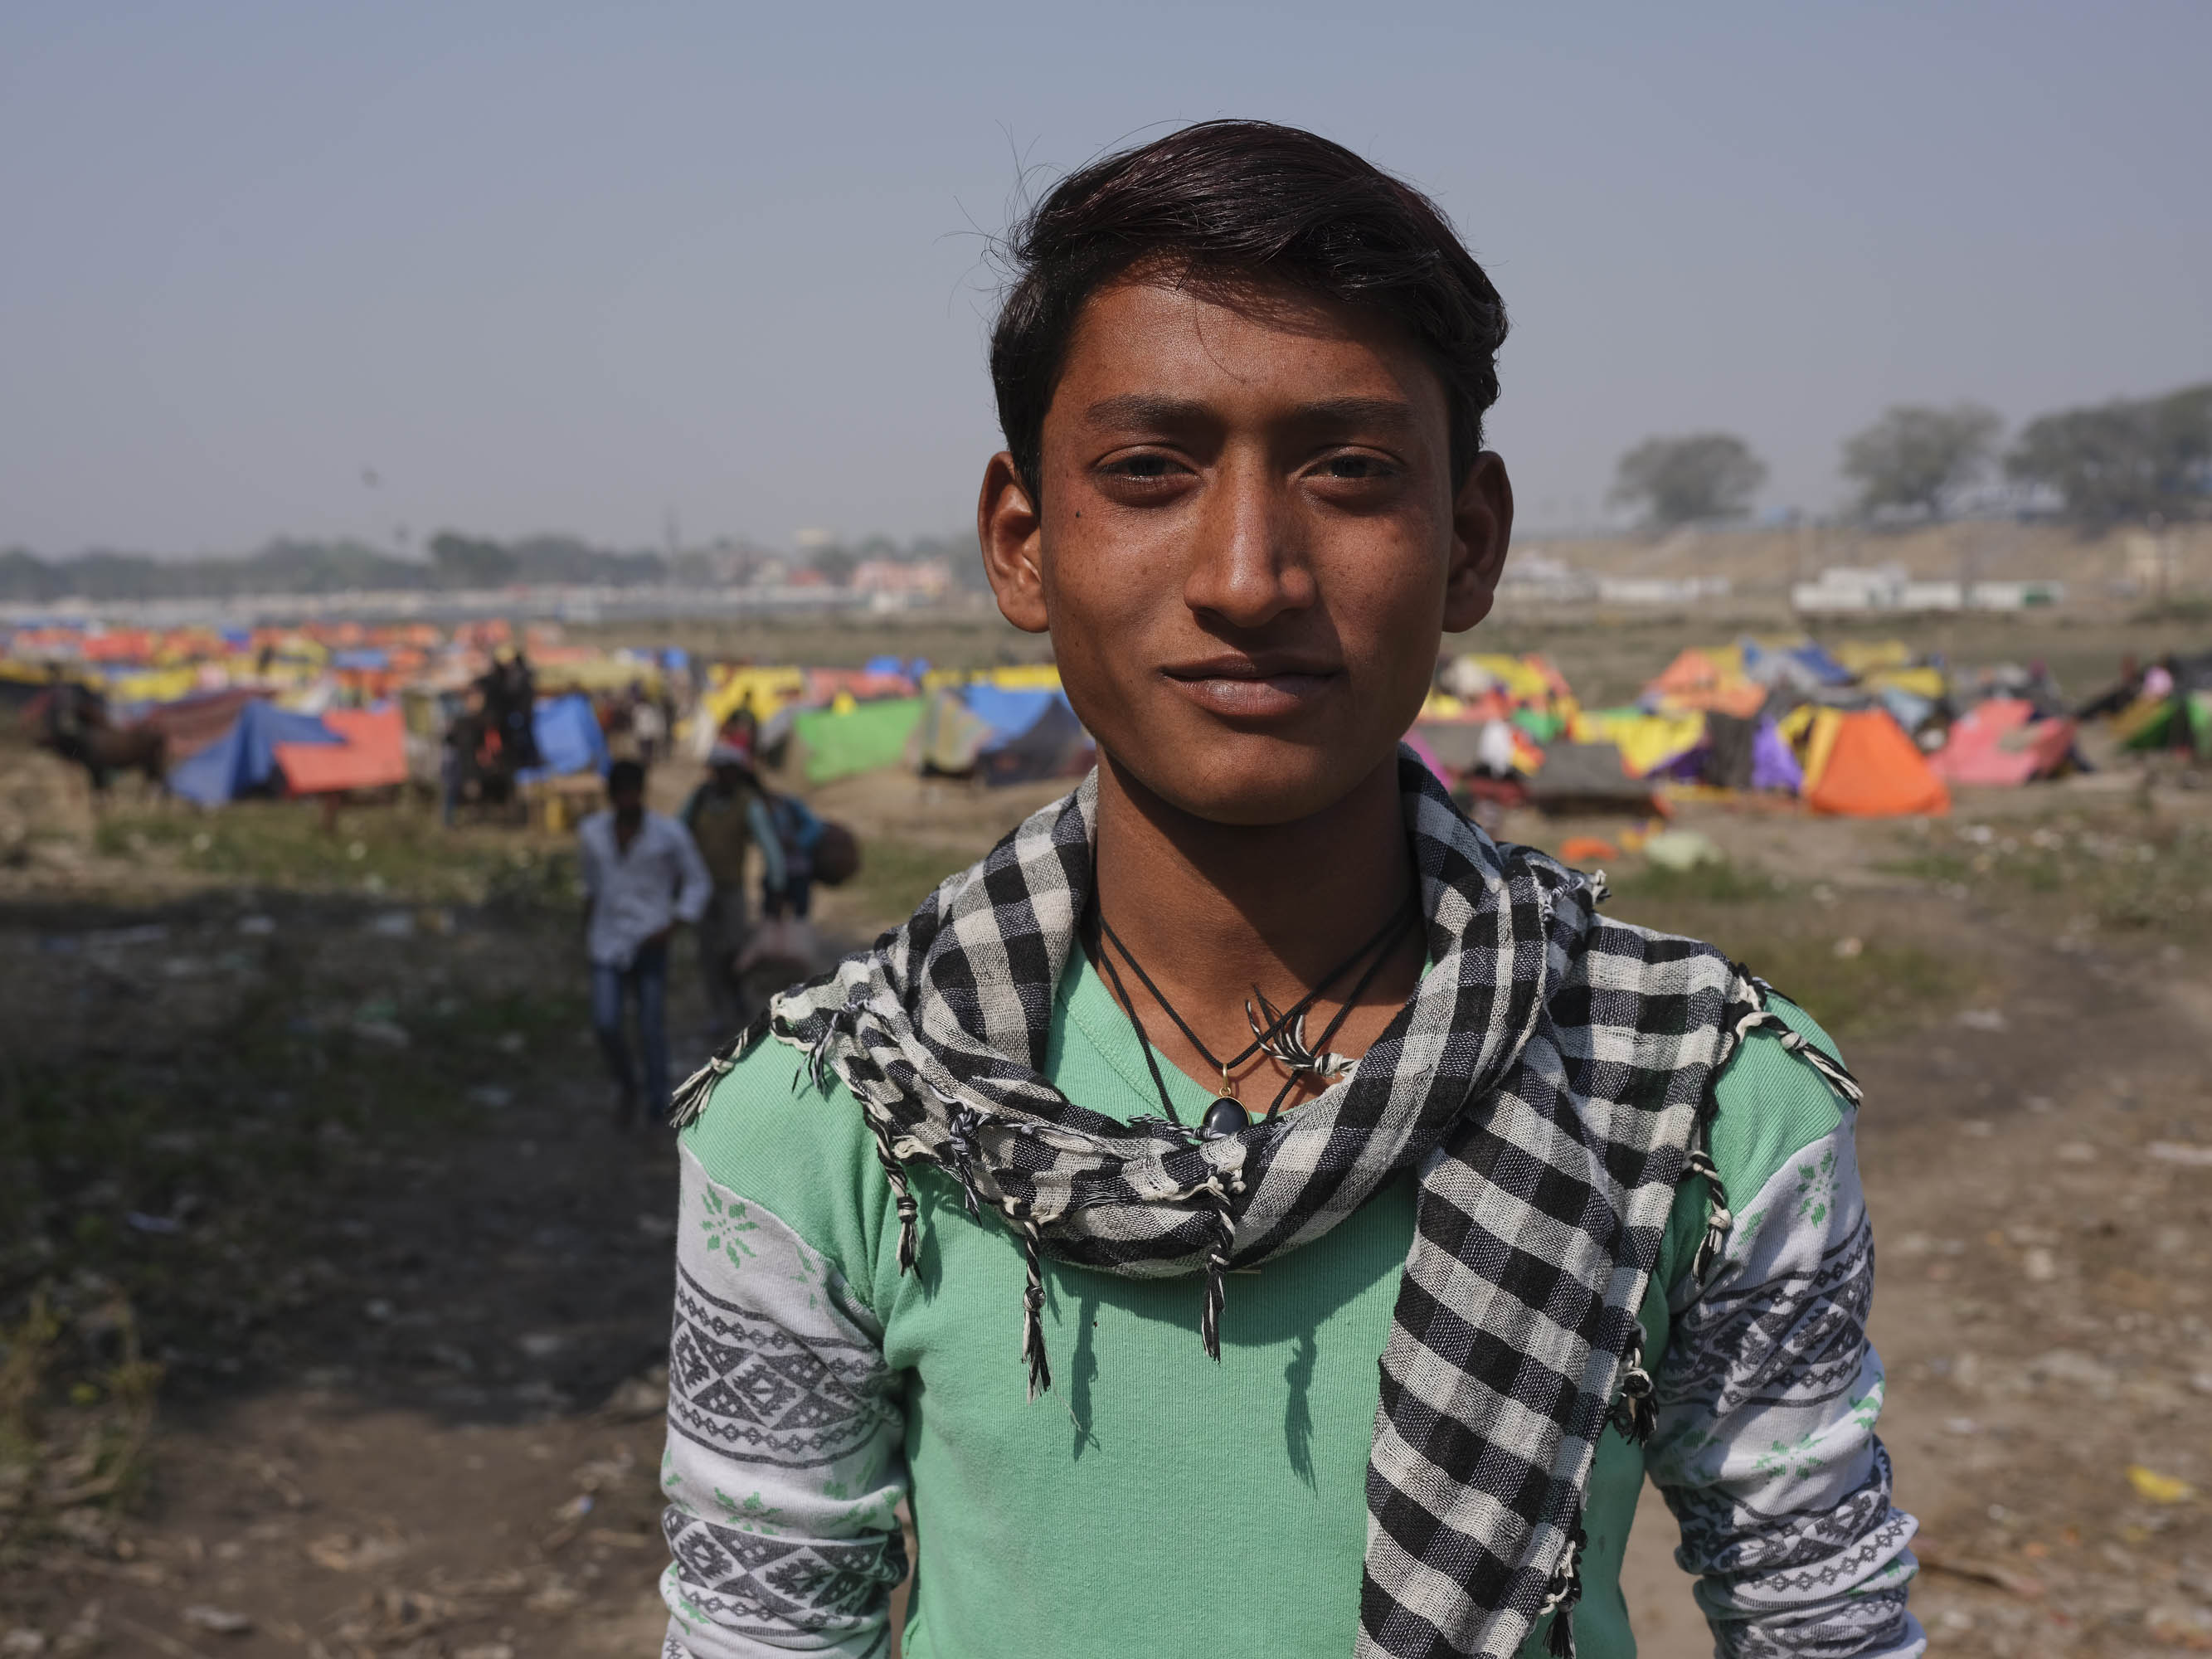 teenager camp pilgrims Kumbh mela 2019 India Allahabad Prayagraj Ardh hindu religious Festival event rivers photographer jose jeuland photography